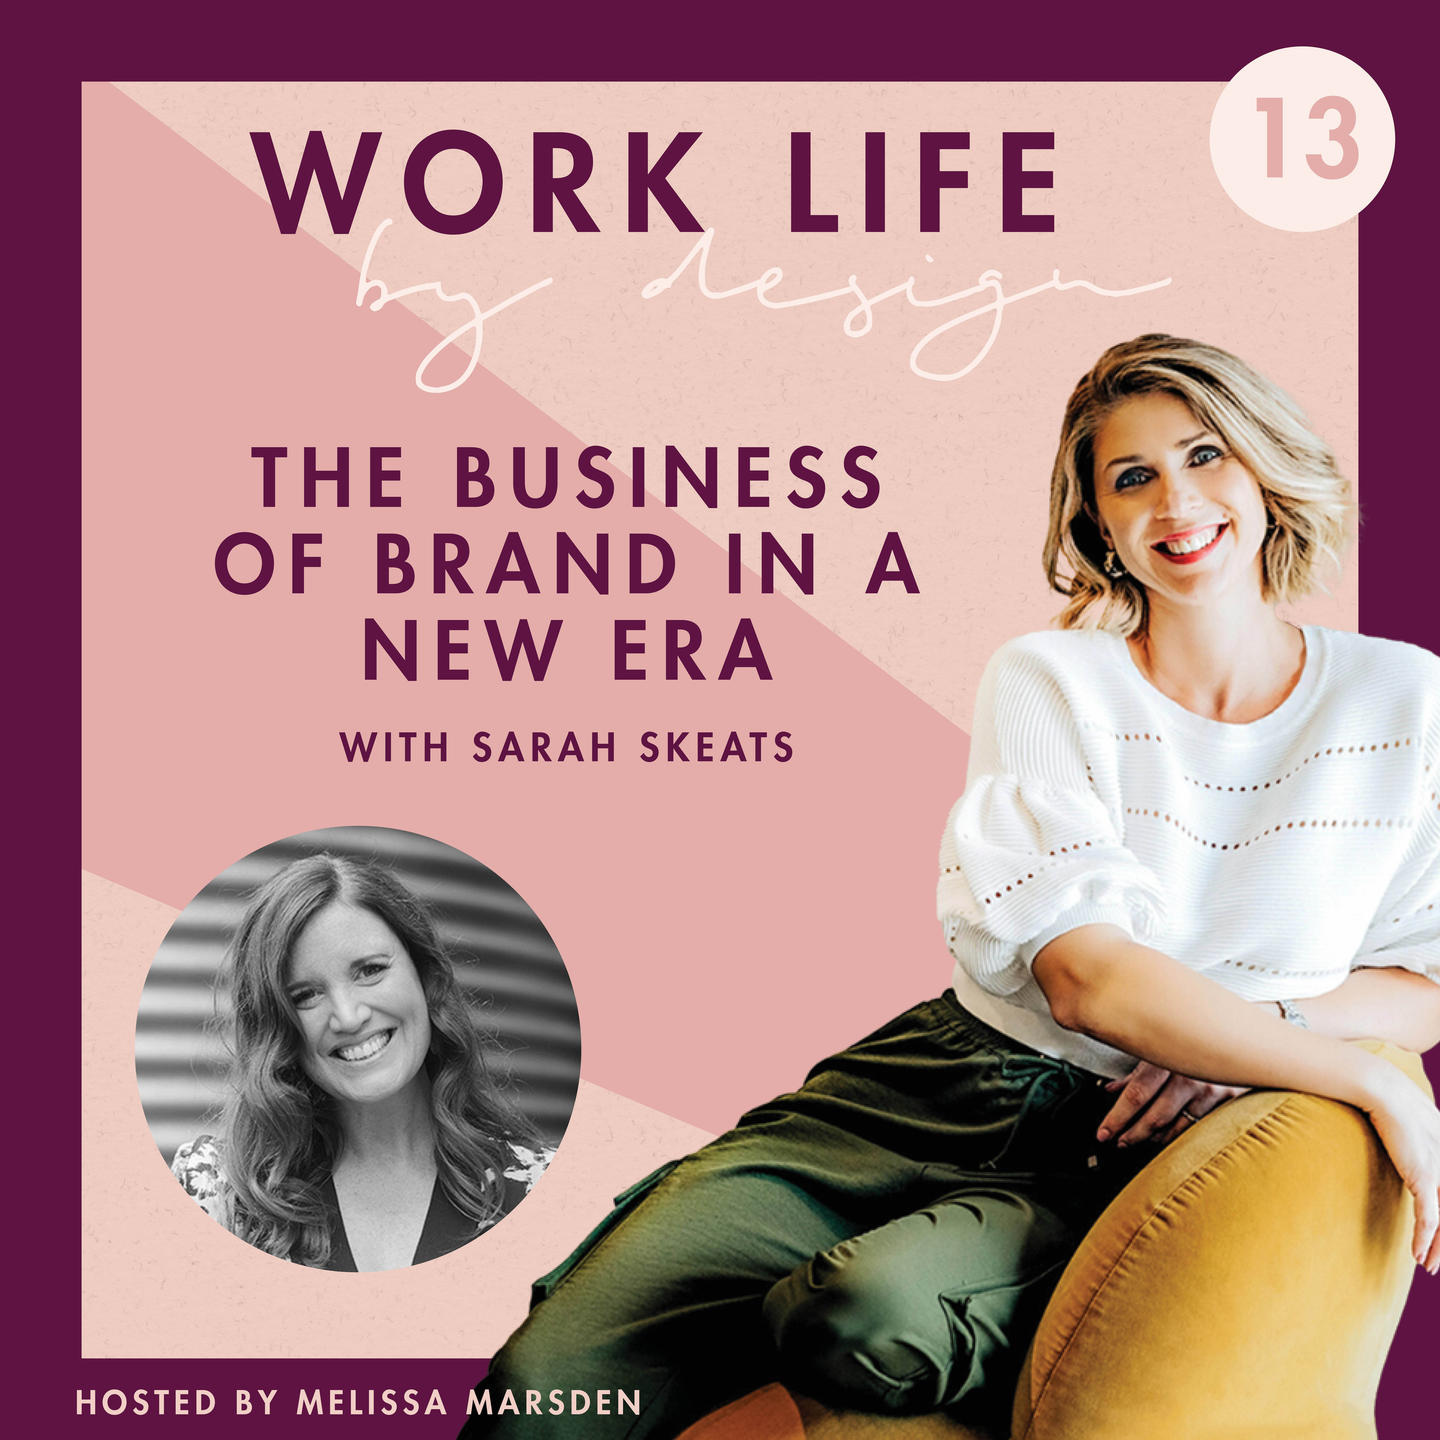 The Business of Brand in the New Era with Sarah Skeats | Work Life by Design with Melissa Marsden